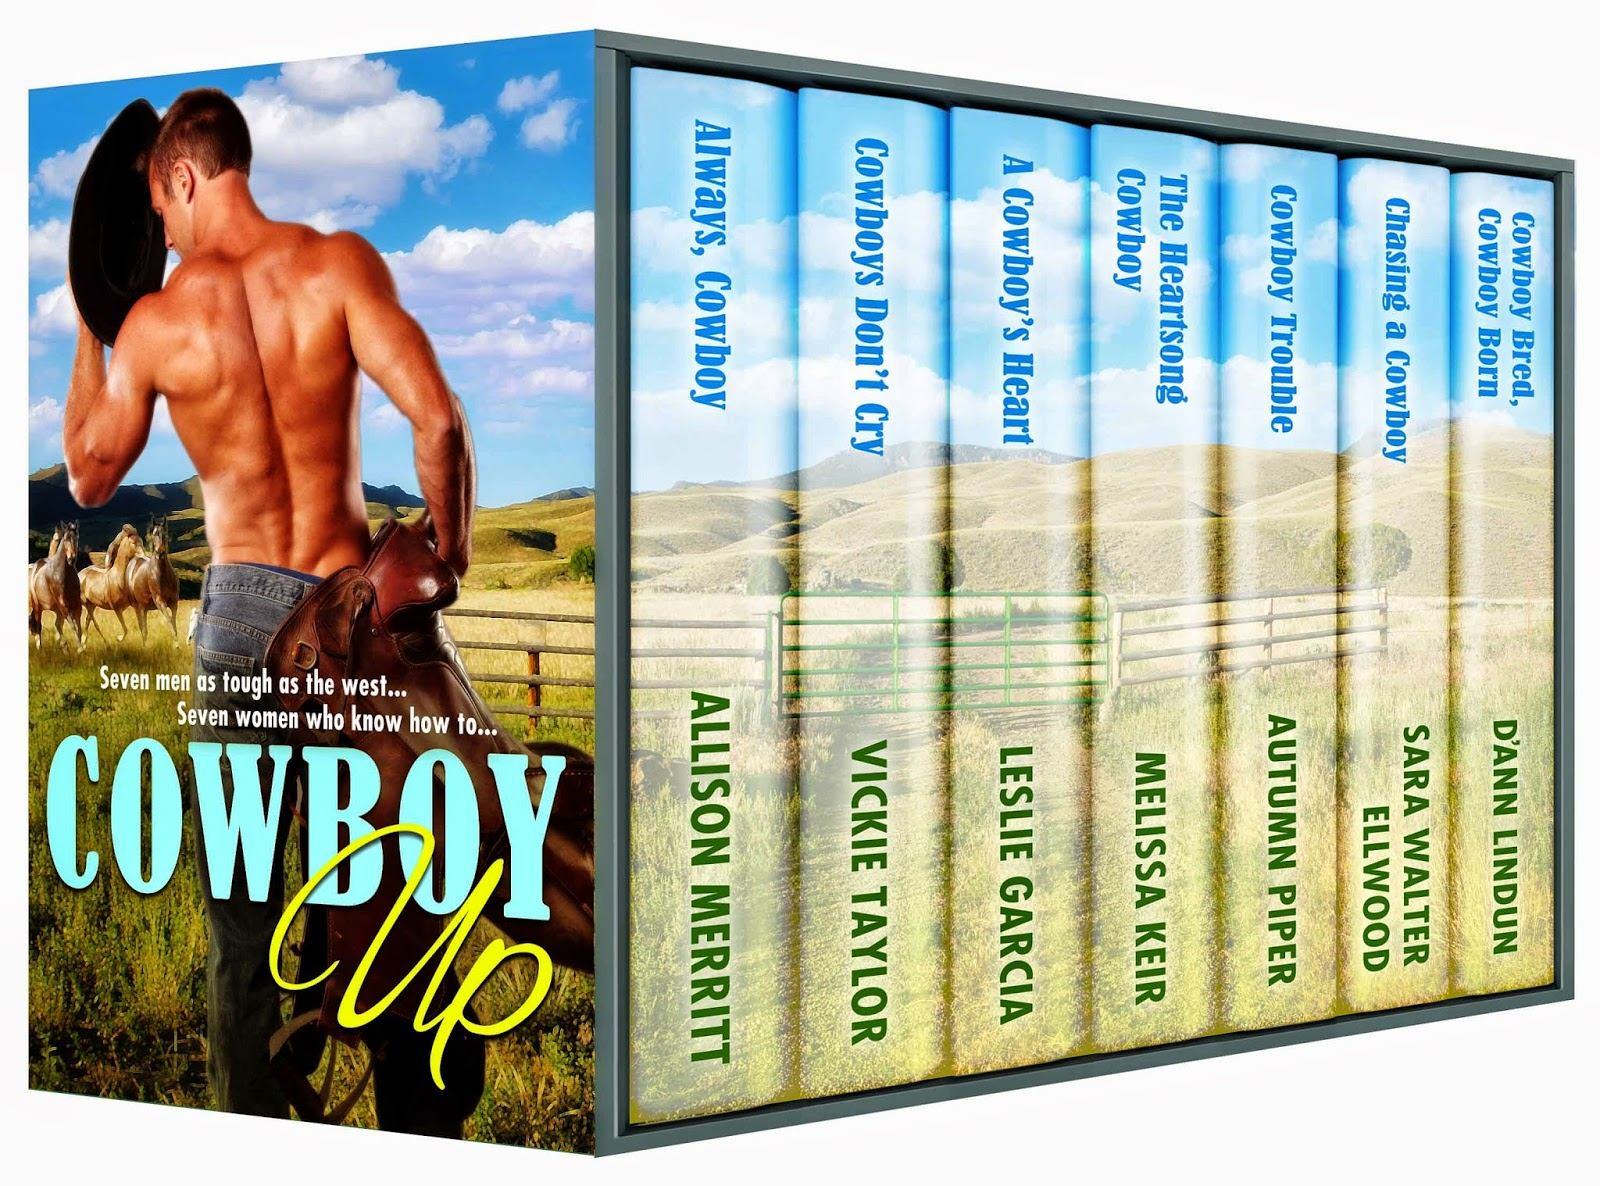 http://www.amazon.com/Cowboy-Up-Allison-Merritt-ebook/dp/B00NDAS9ZM/